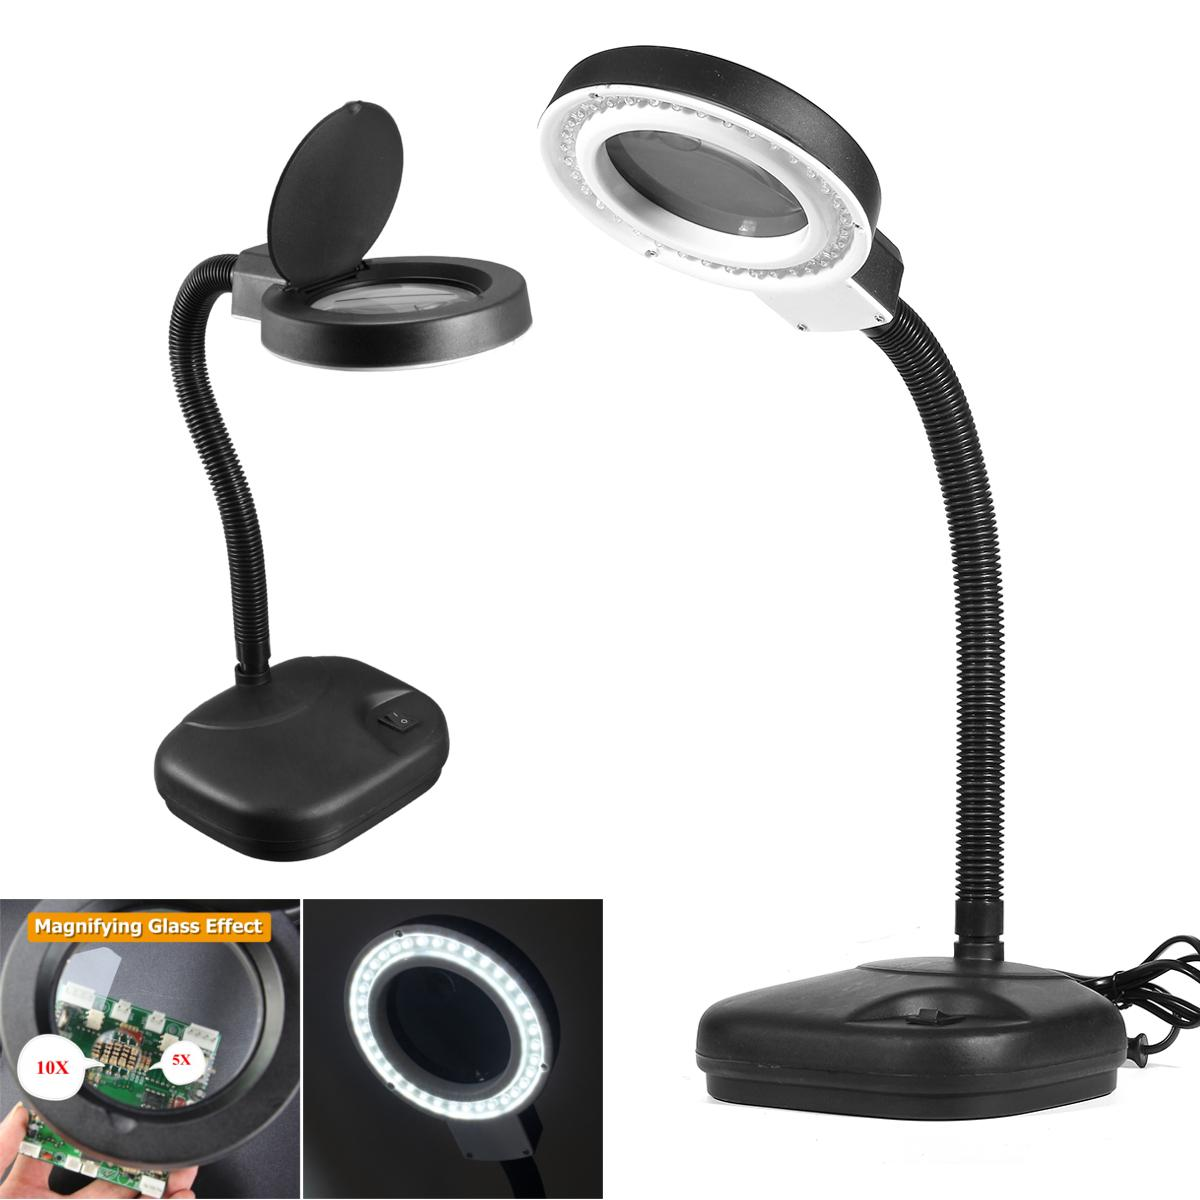 Lights & Lighting Led Desk Magnifier Lamp Magnifying Glass Light Electronic Repairing Loupe Lights Lamps & Shades